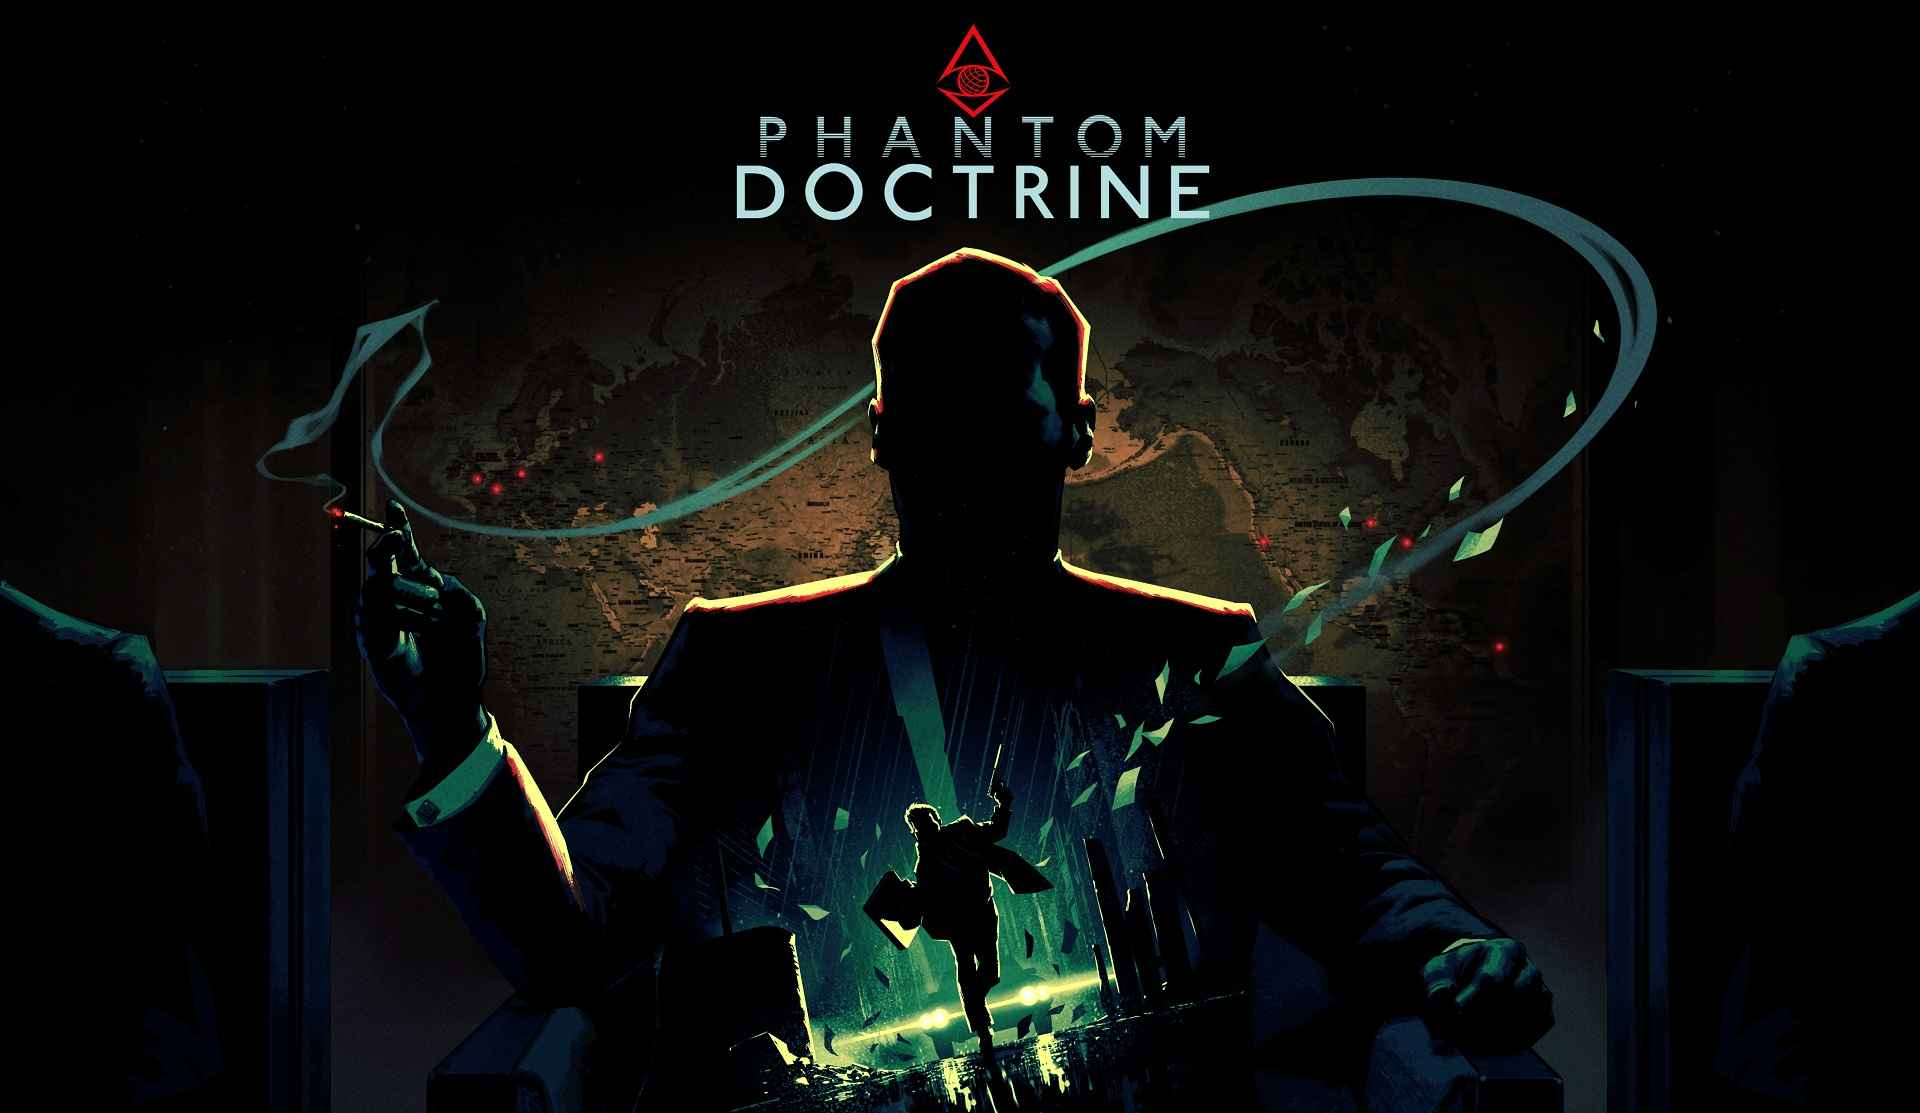 Cold War Strategy Game Phantom Doctrine Hits PS4 Next Month